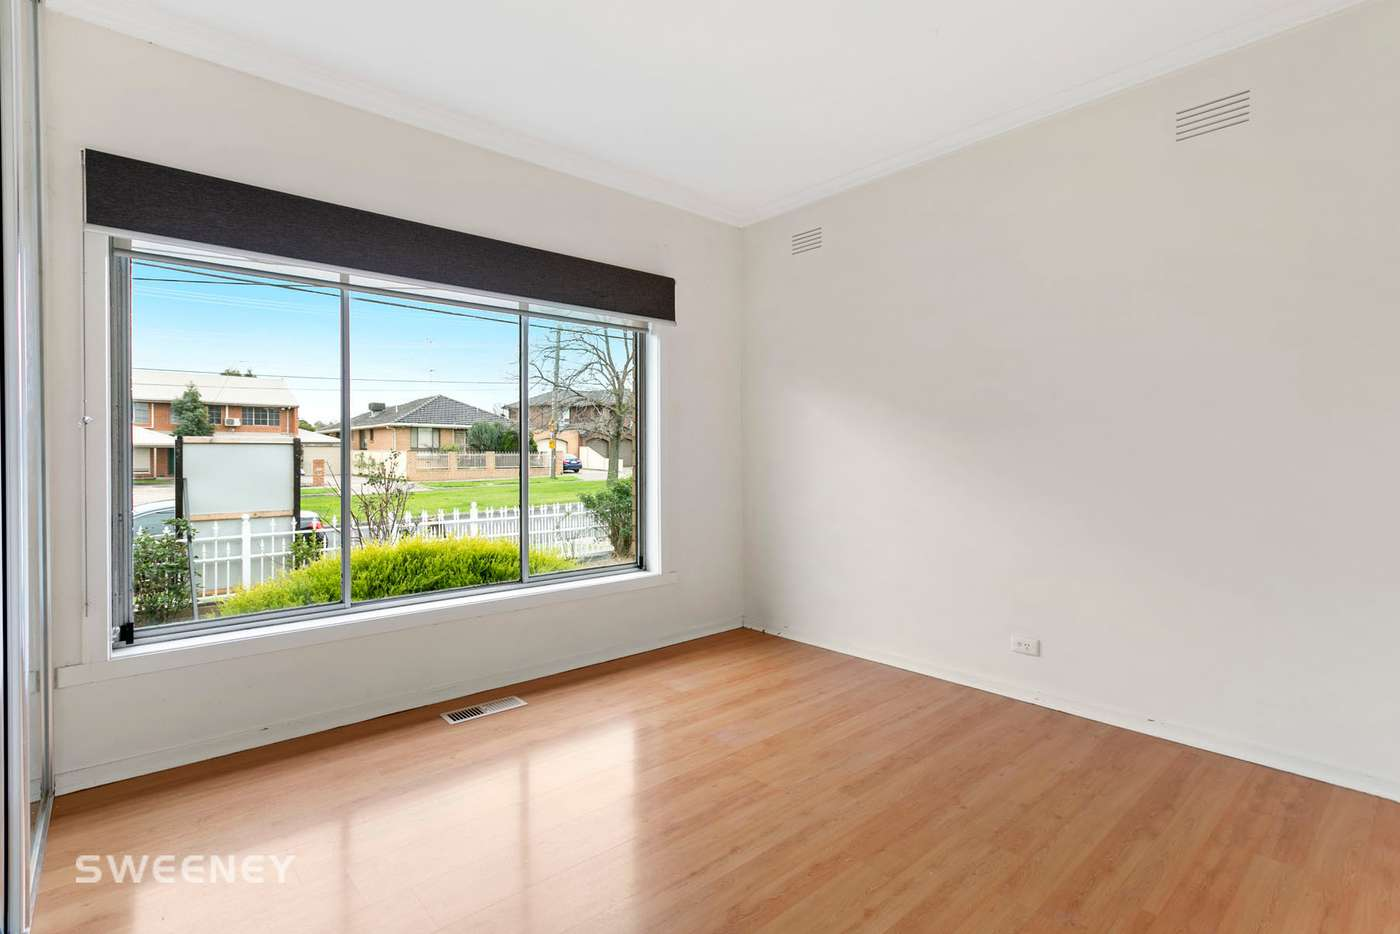 Fifth view of Homely house listing, 16 Fairbairn Road, Sunshine West VIC 3020